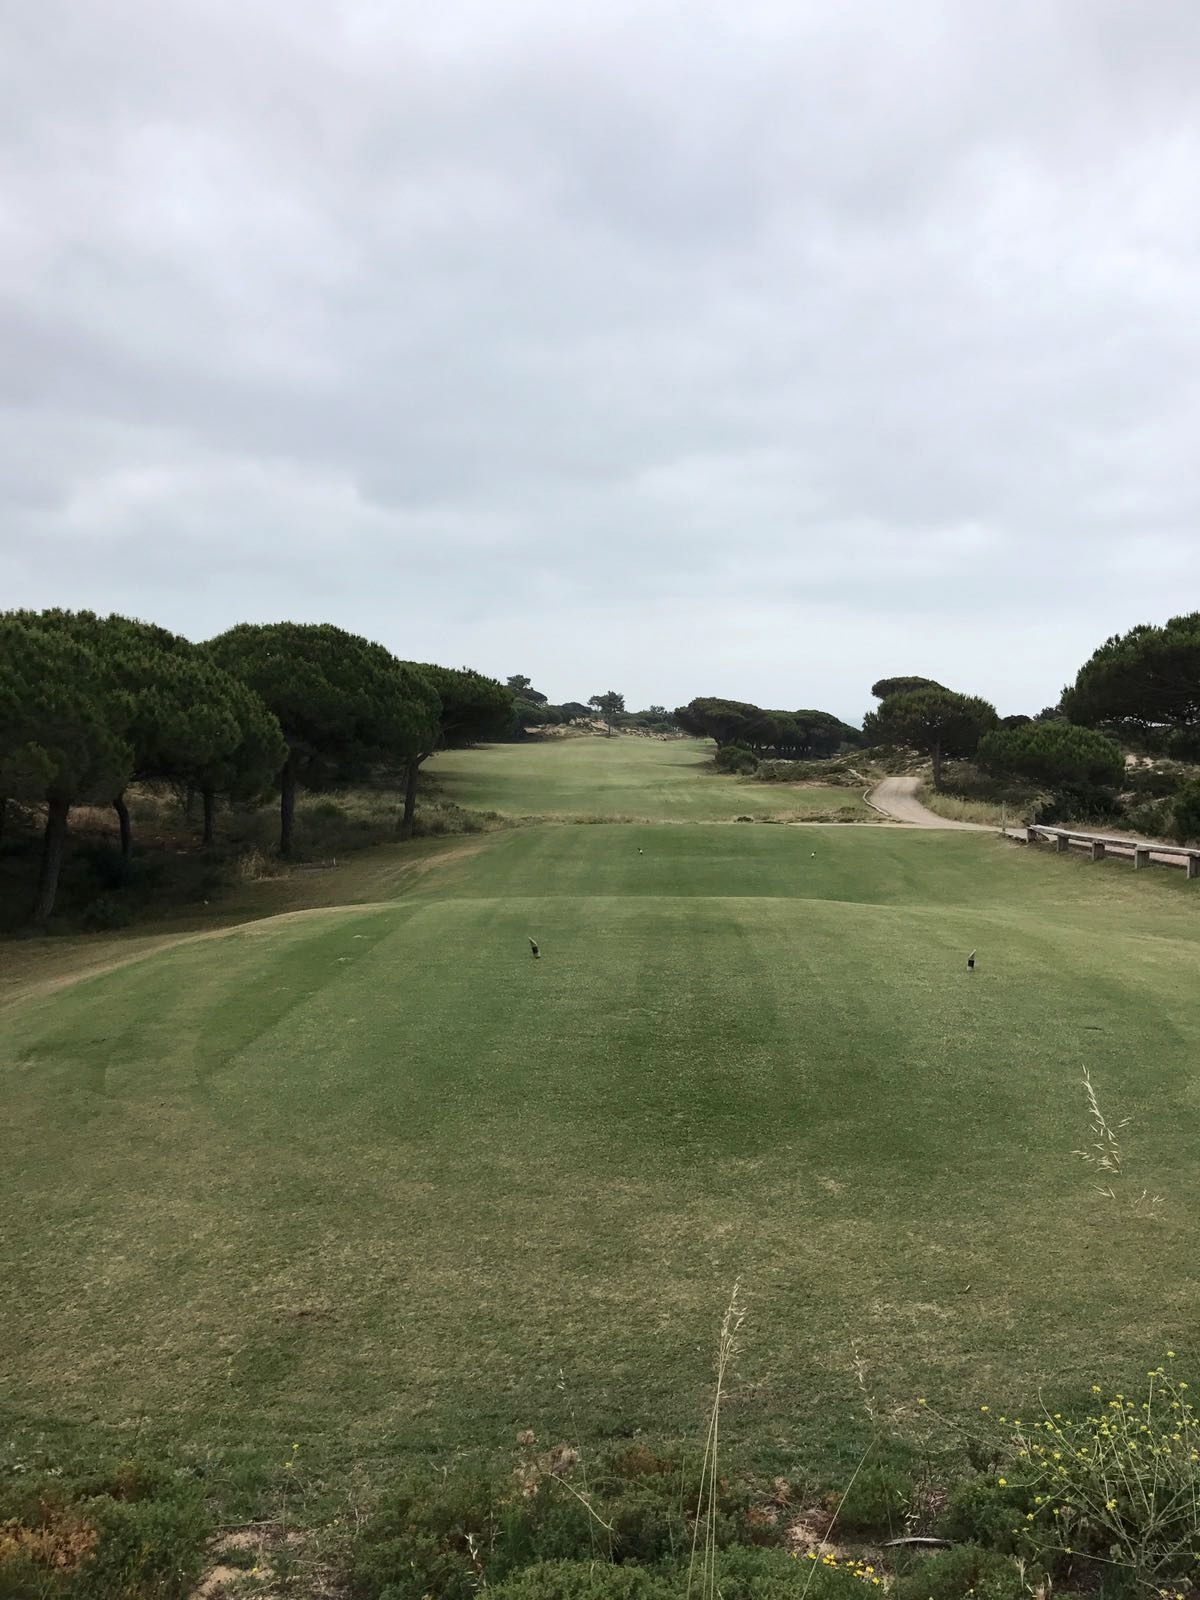 The First hole at Oitavos Dunes